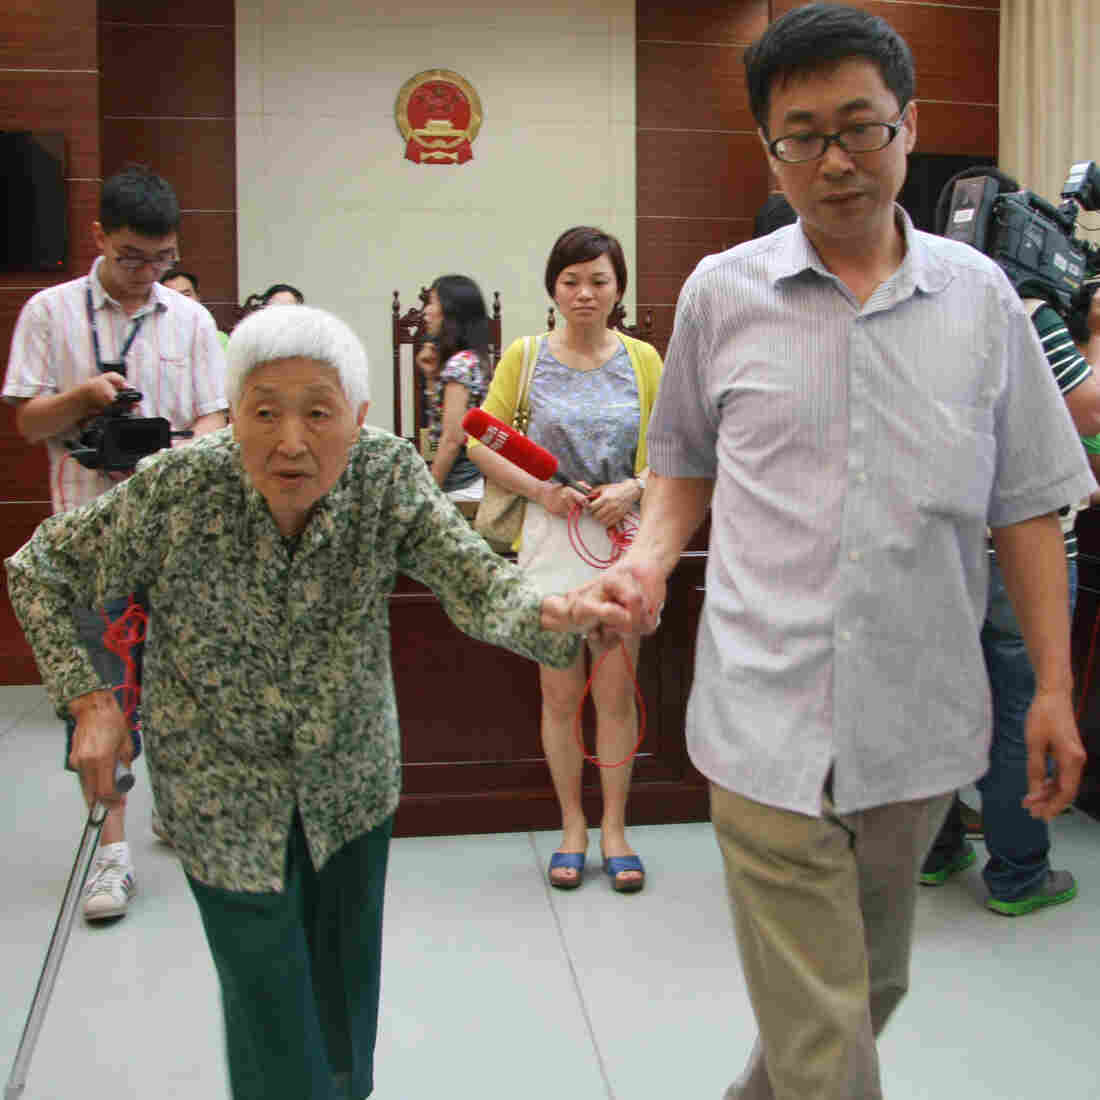 Ethical Tradition Meets Economics In An Aging China